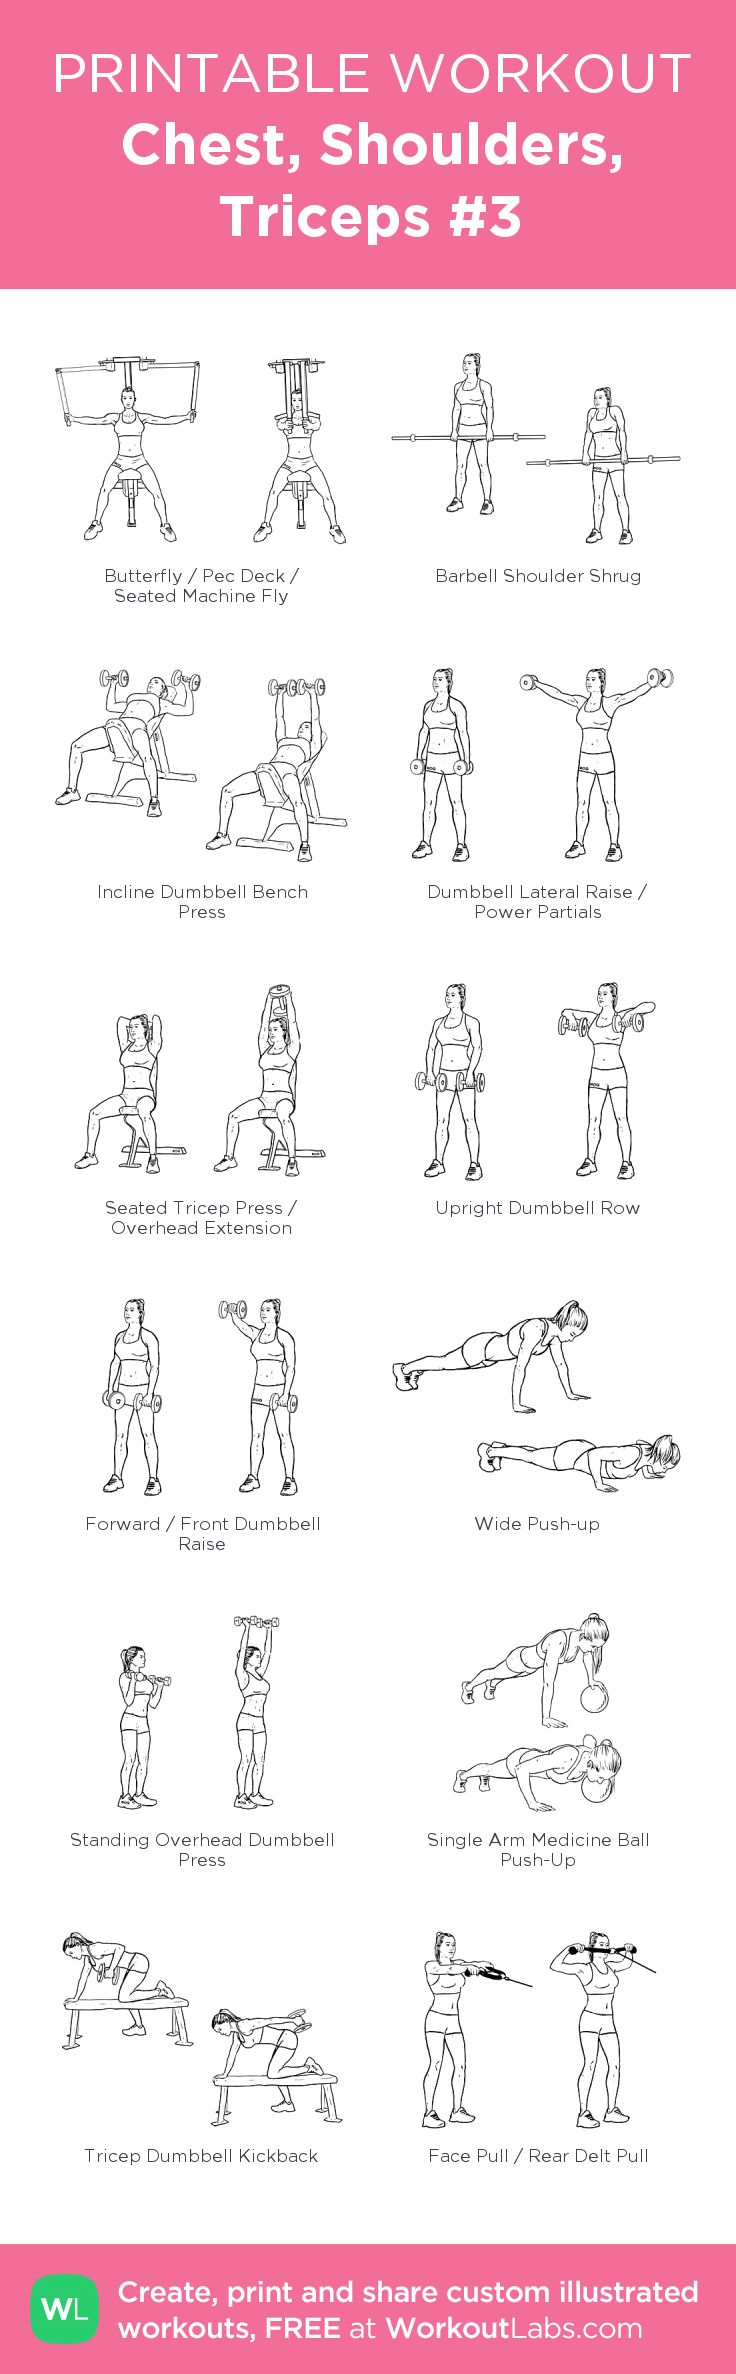 Chest, Shoulders, Triceps #3: